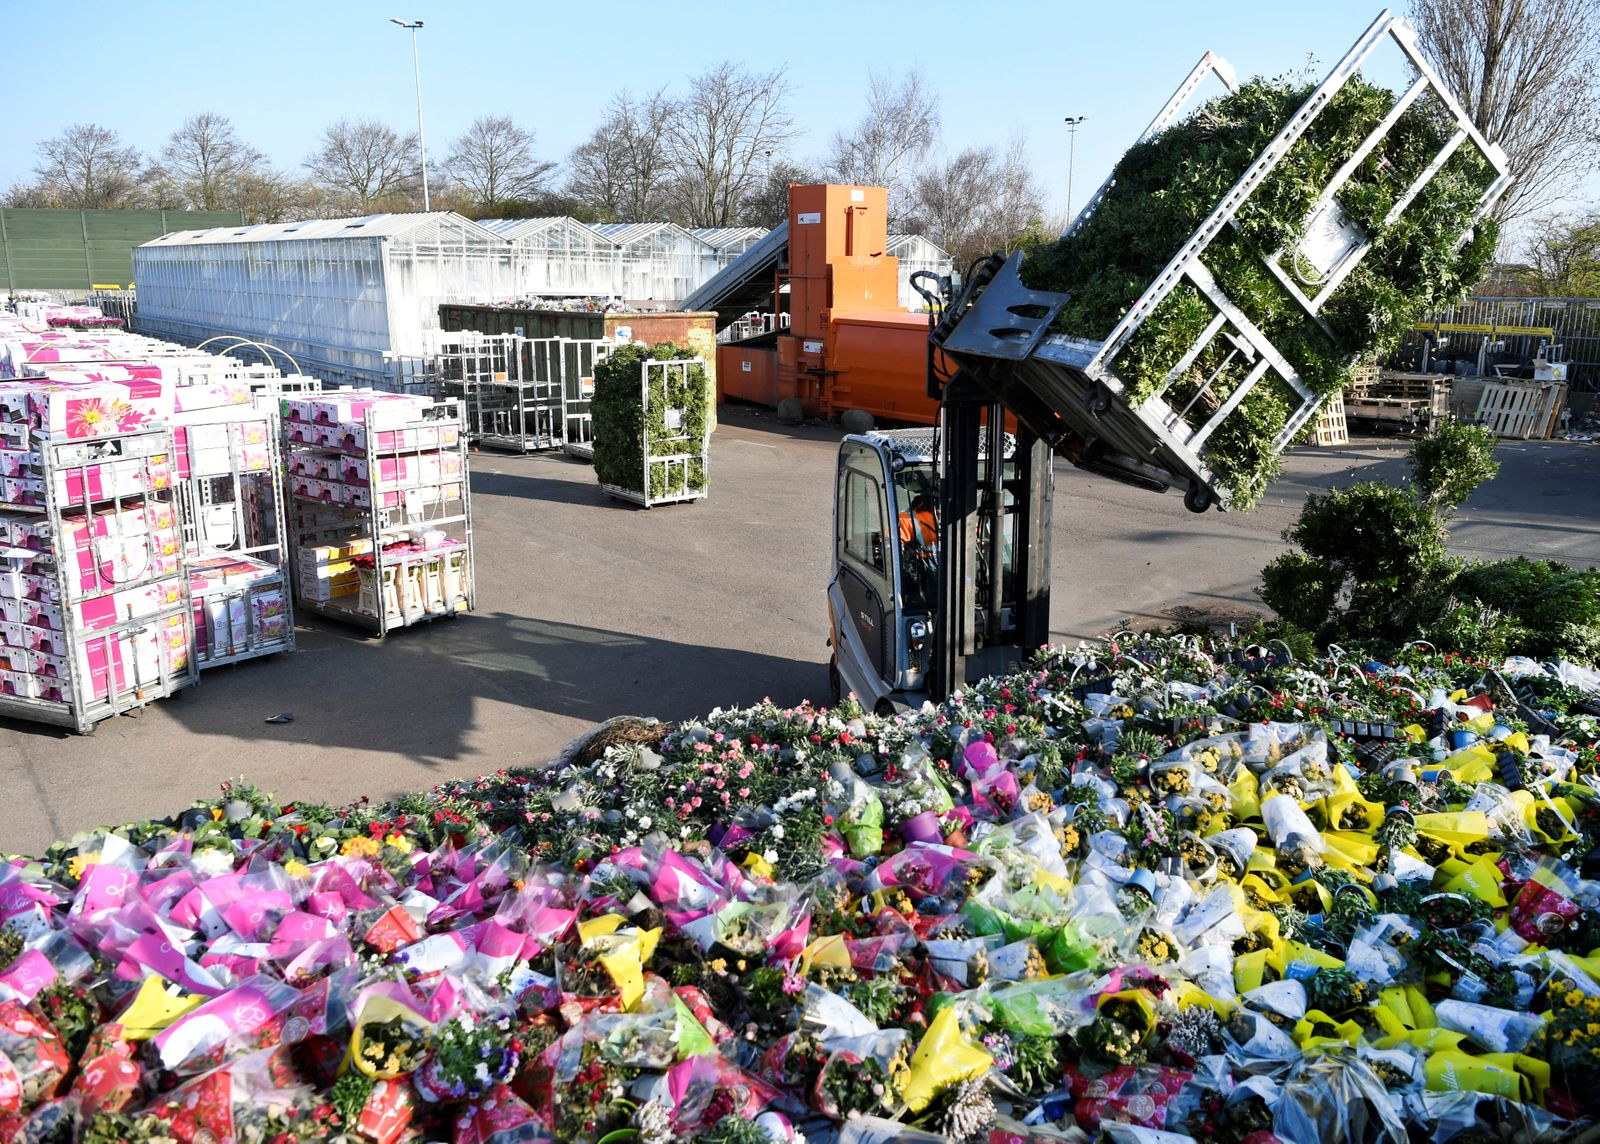 Surplus flowers are destroyed at a waste place next to the flower auction in Honselersdijk